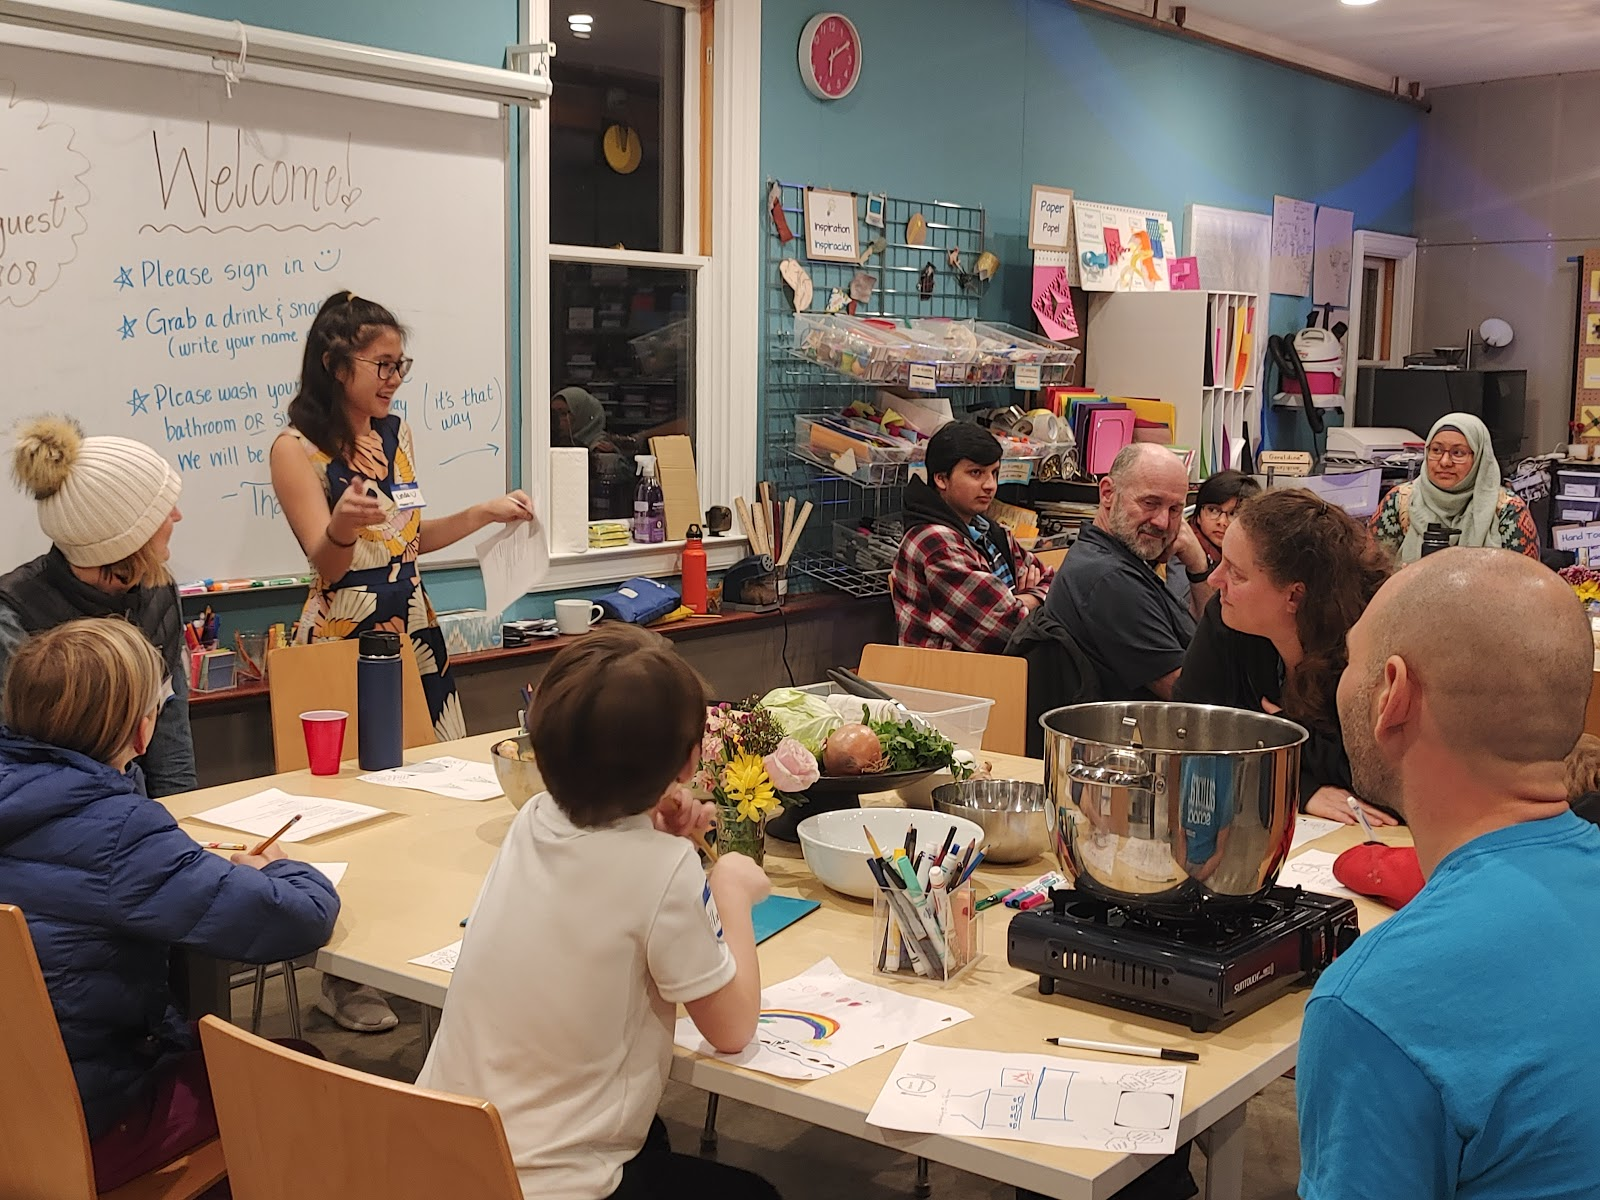 Linda, a Vietnamese-American staff member, shares a family recipe in the colorful Maker Ed Community Studio.